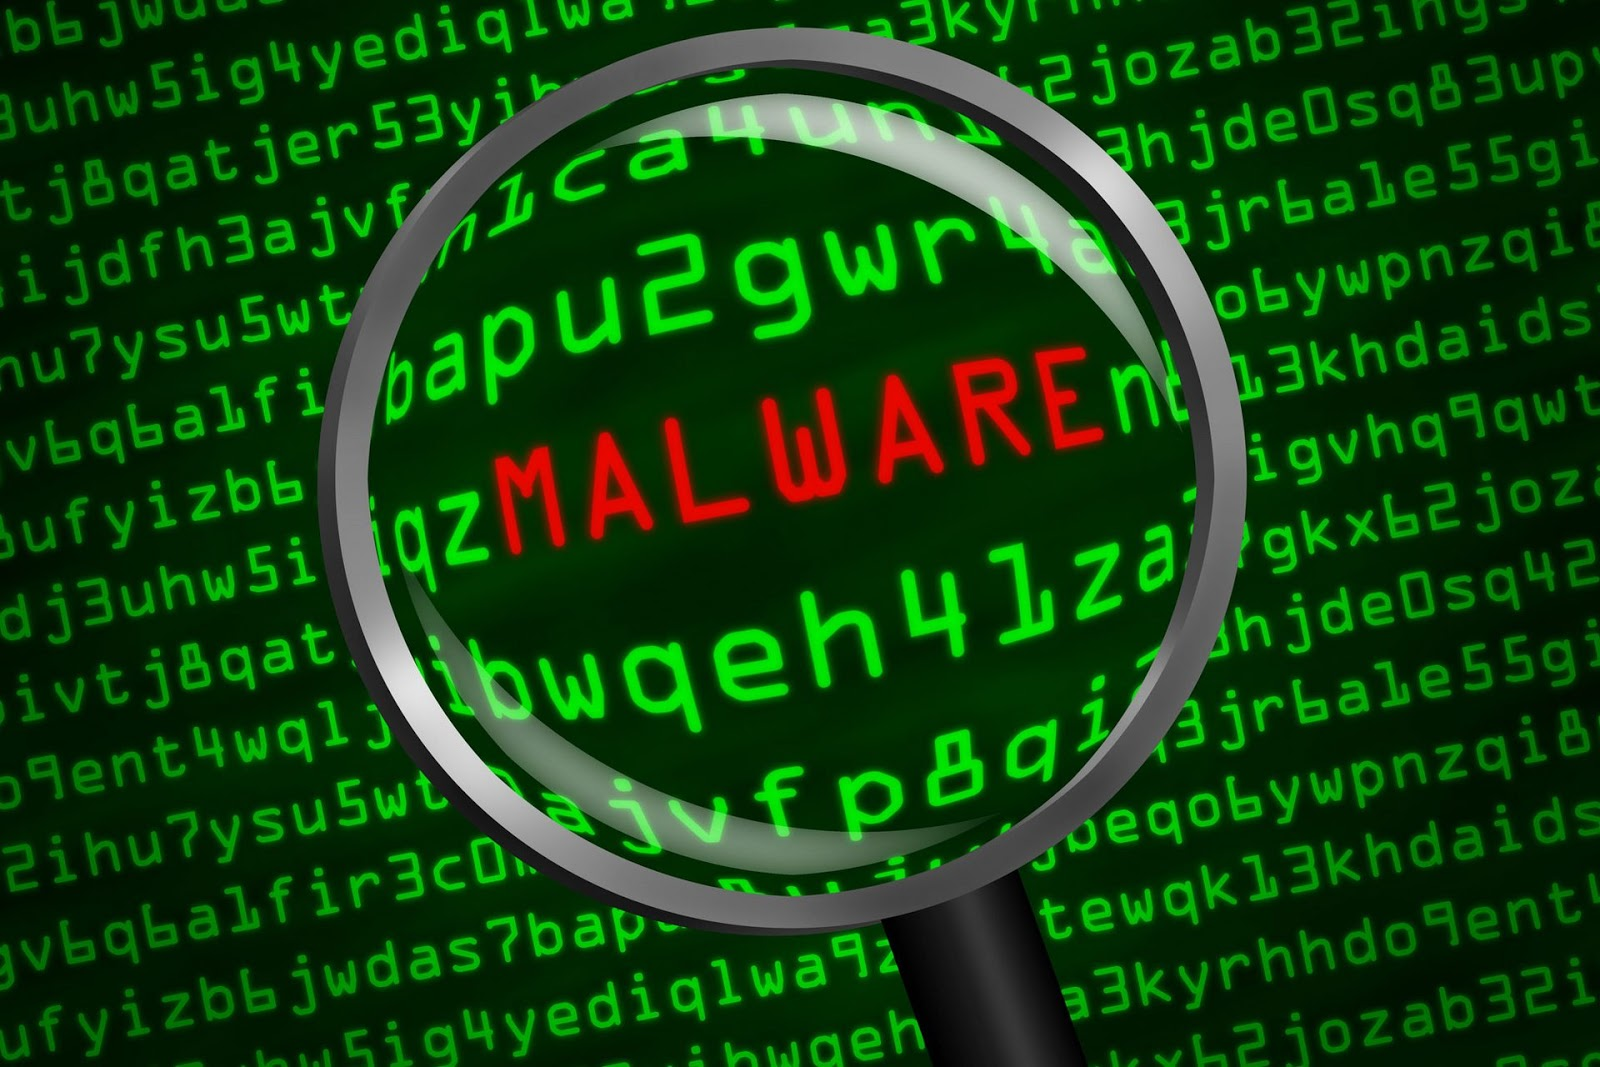 Malware: What It Is, How It Spreads, How to Defend from It